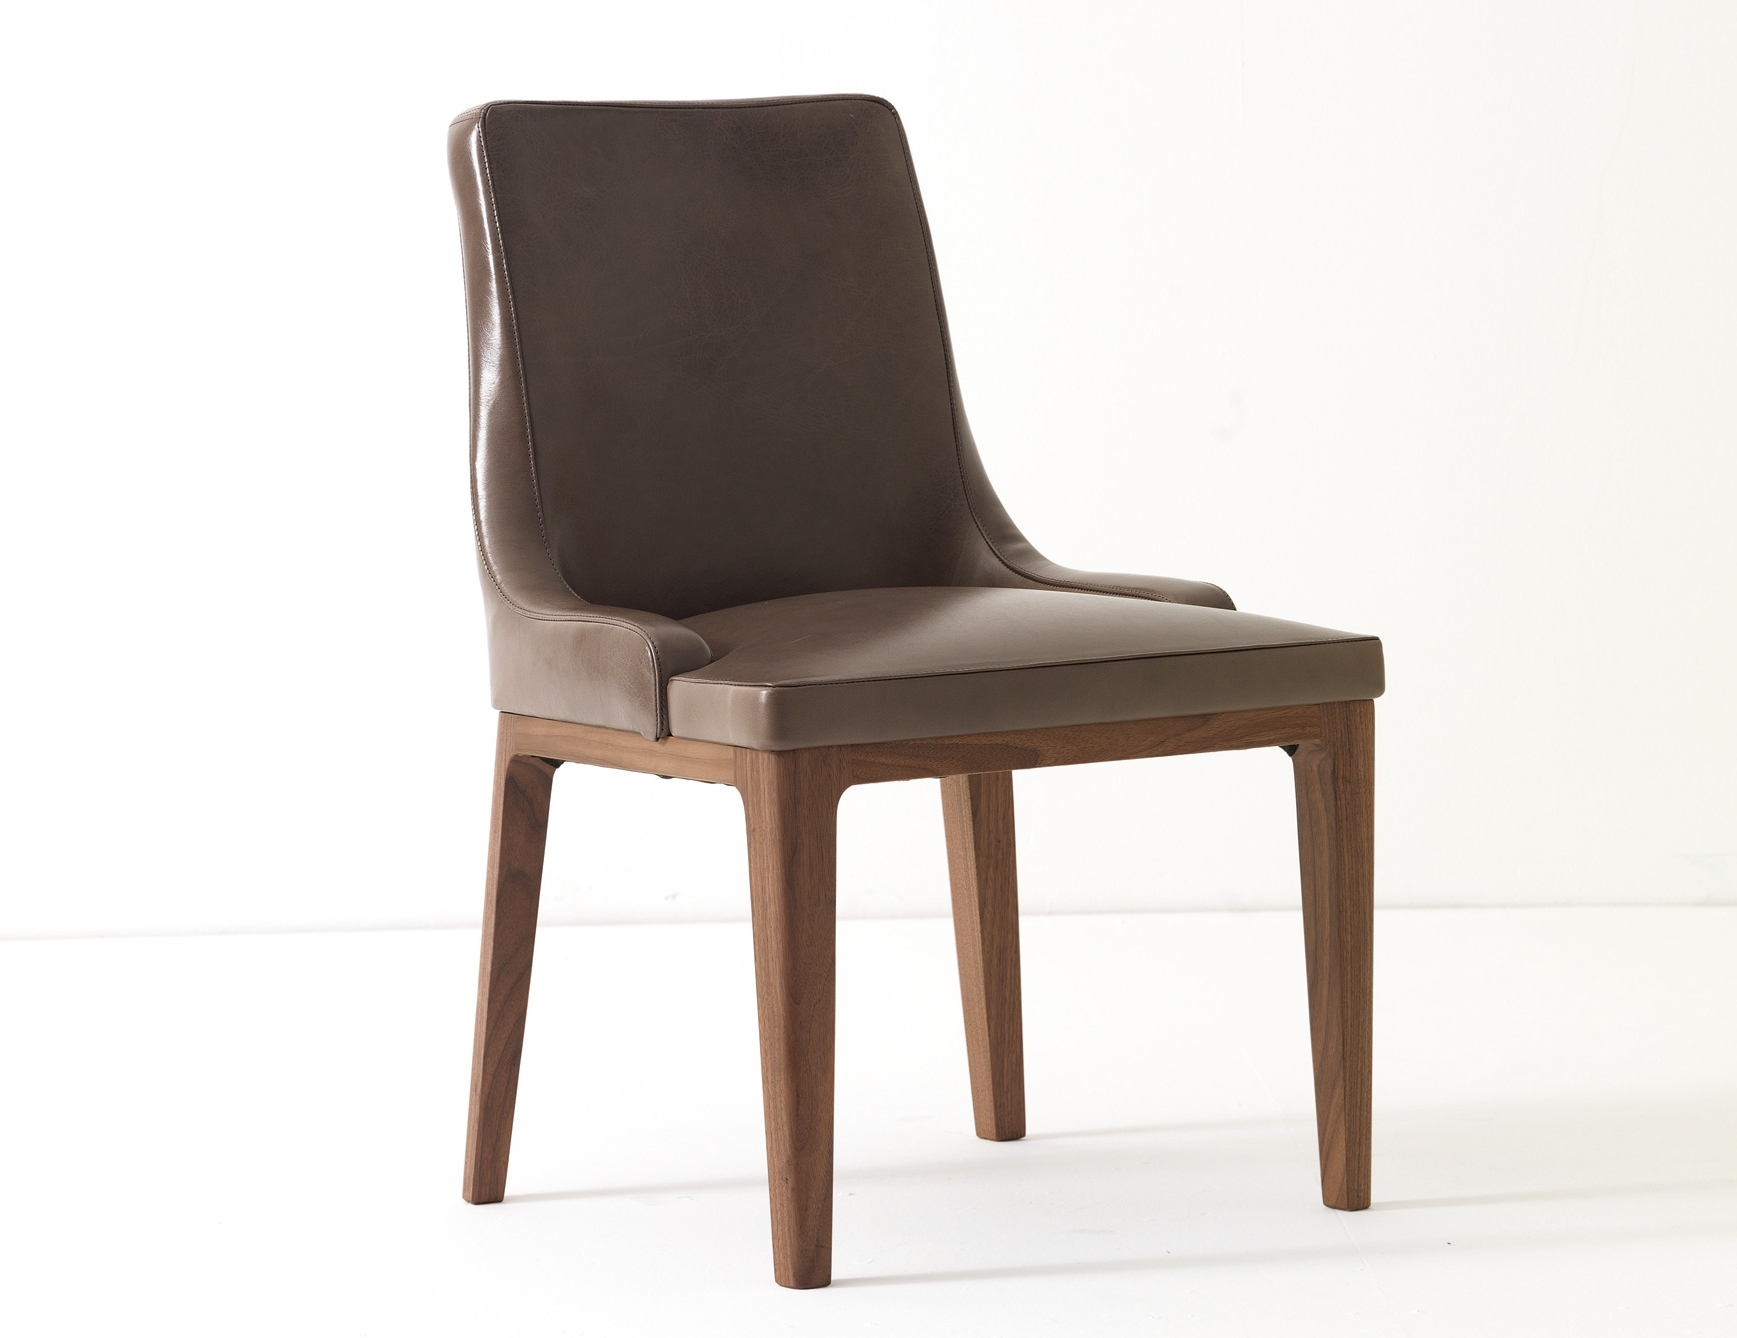 Ulivi Lola Brown Leather Dining Chair (View 18 of 20)